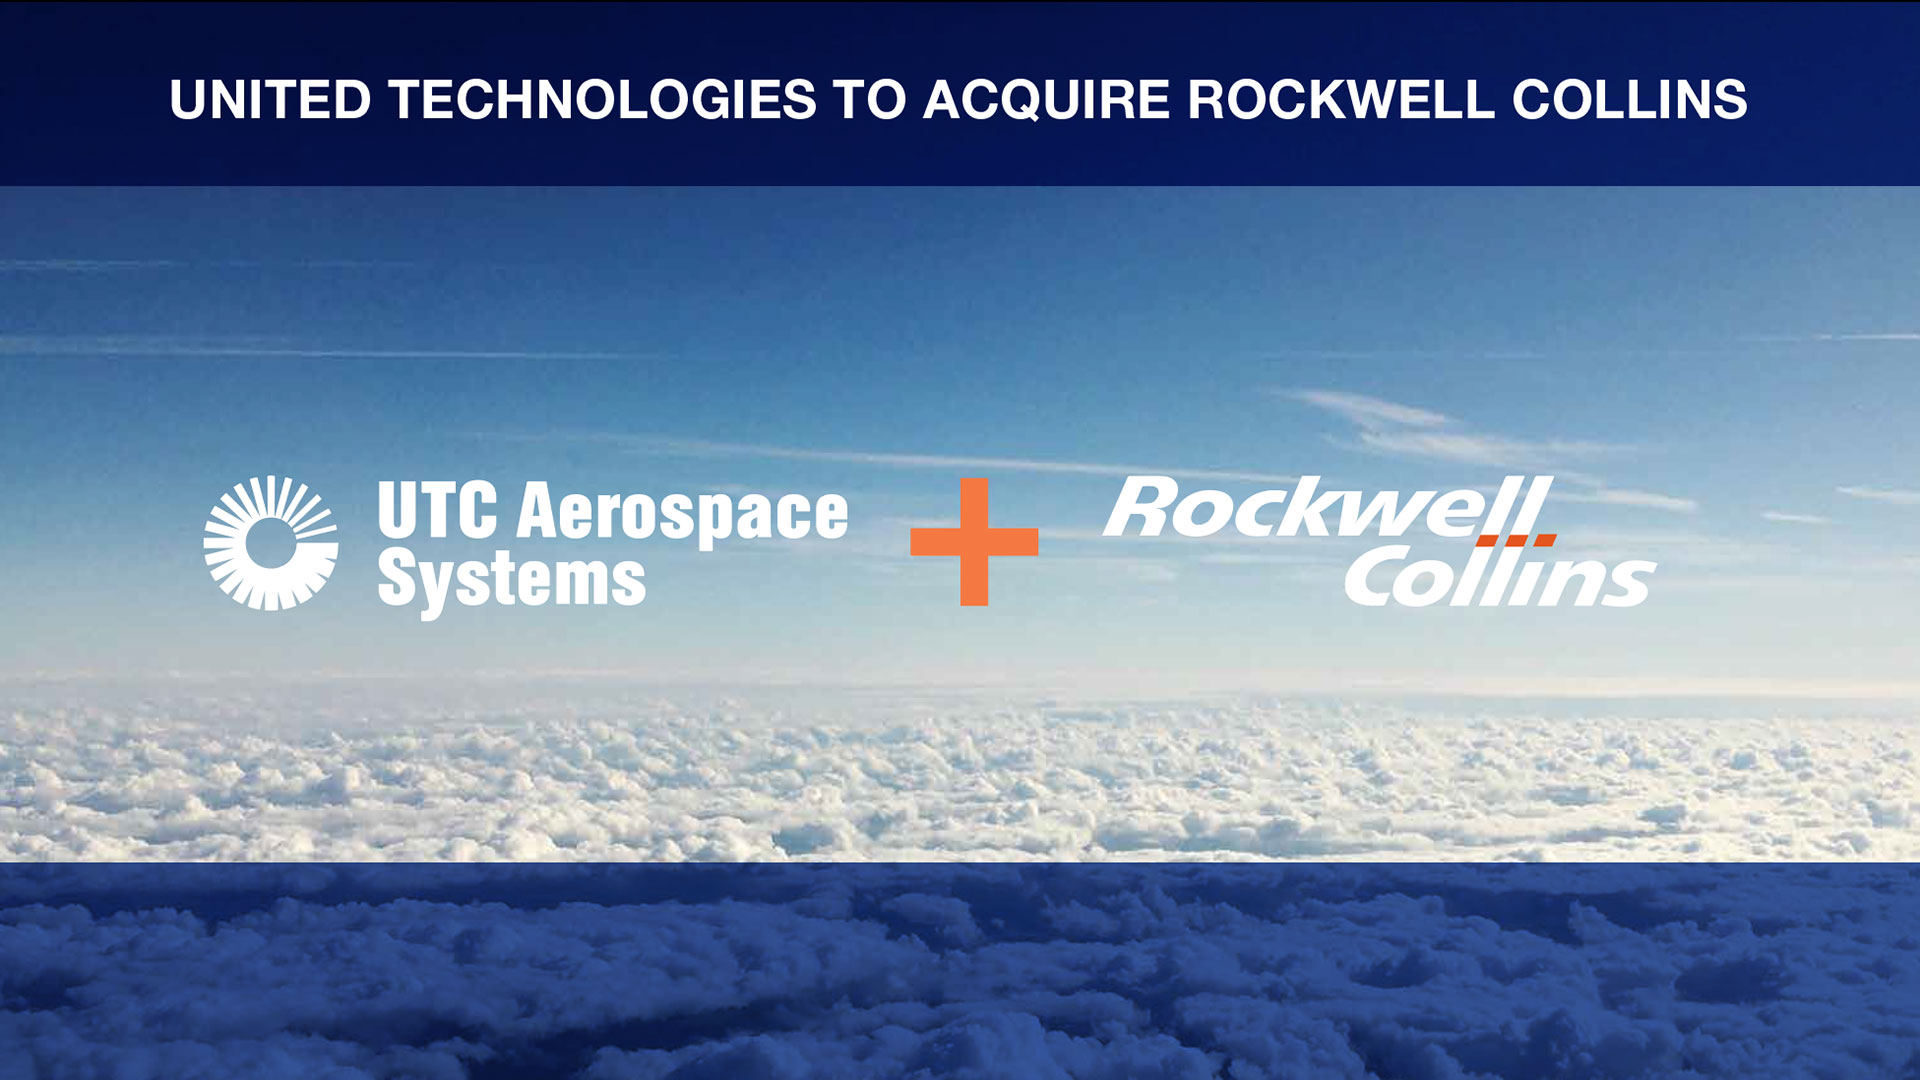 Rockwell Collins Building Trust Every Day Gt Publicaciones Circuitbending Build Your Own Alien Instruments Creating A Premier Aerospace Systems Supplier